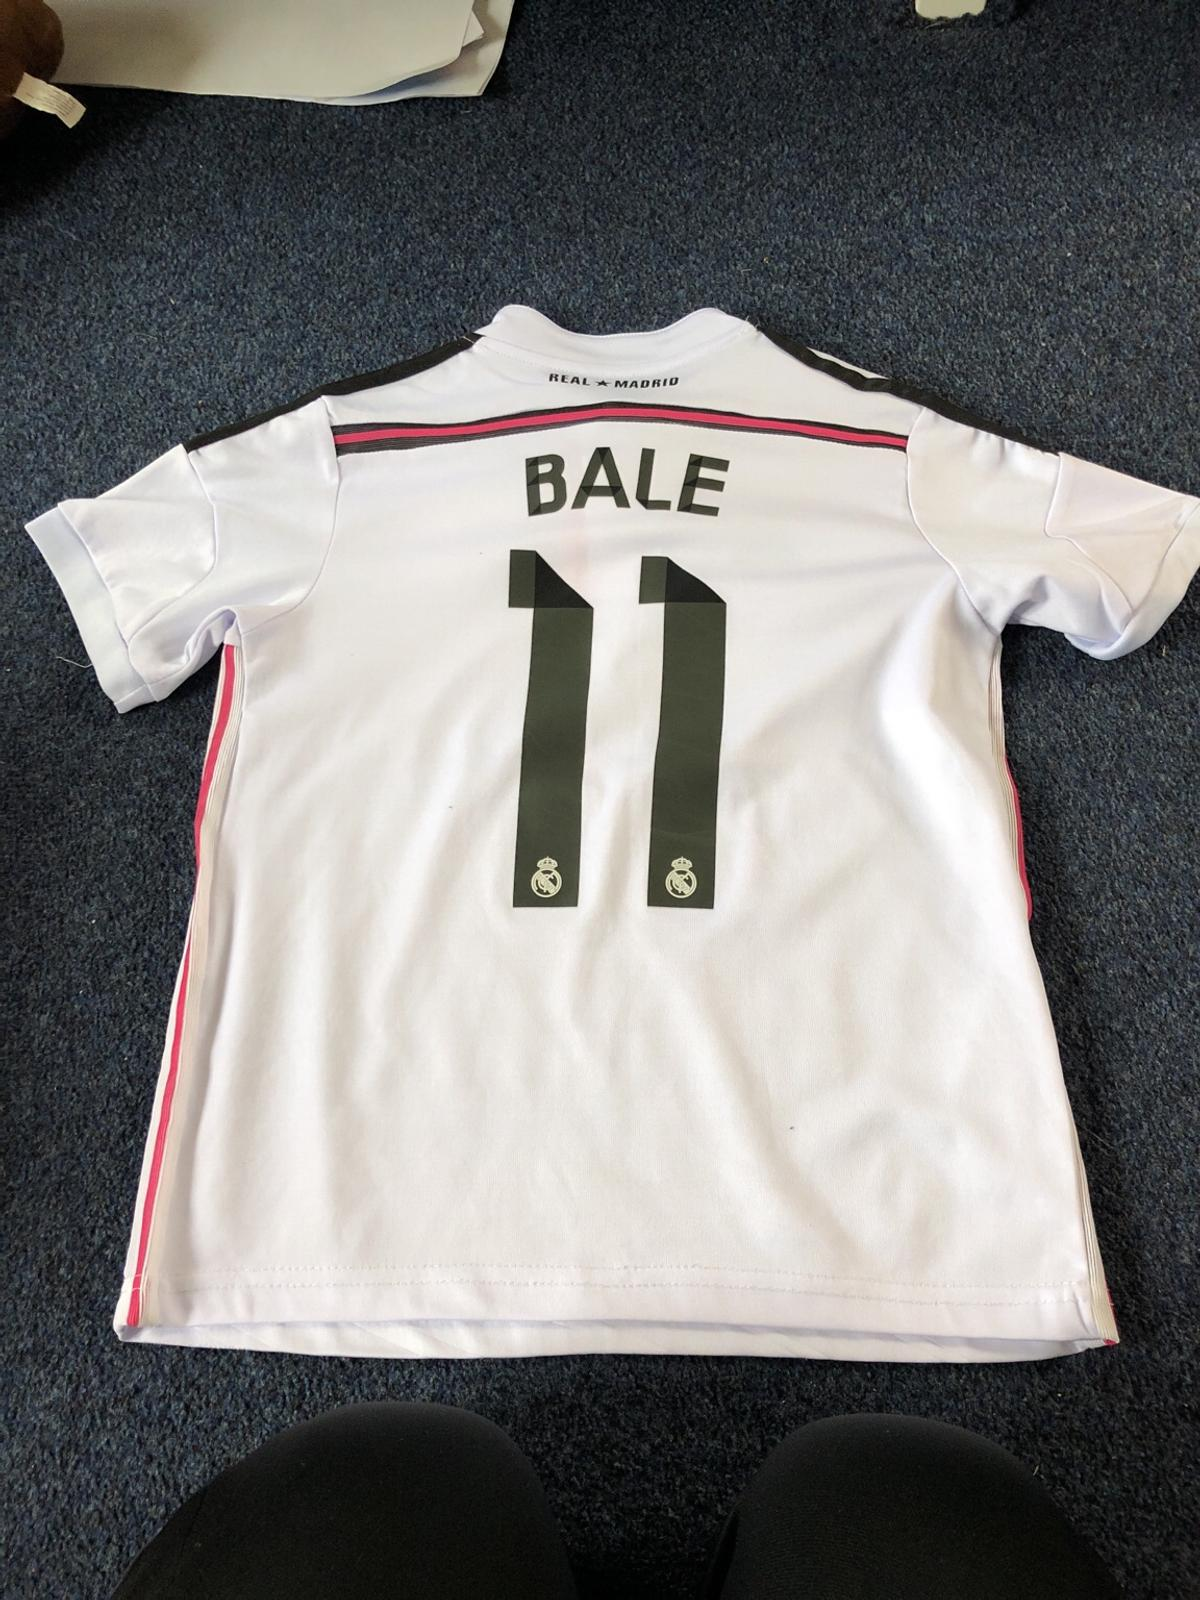 new styles 656a2 4ed45 Kids Real Madrid Bale top